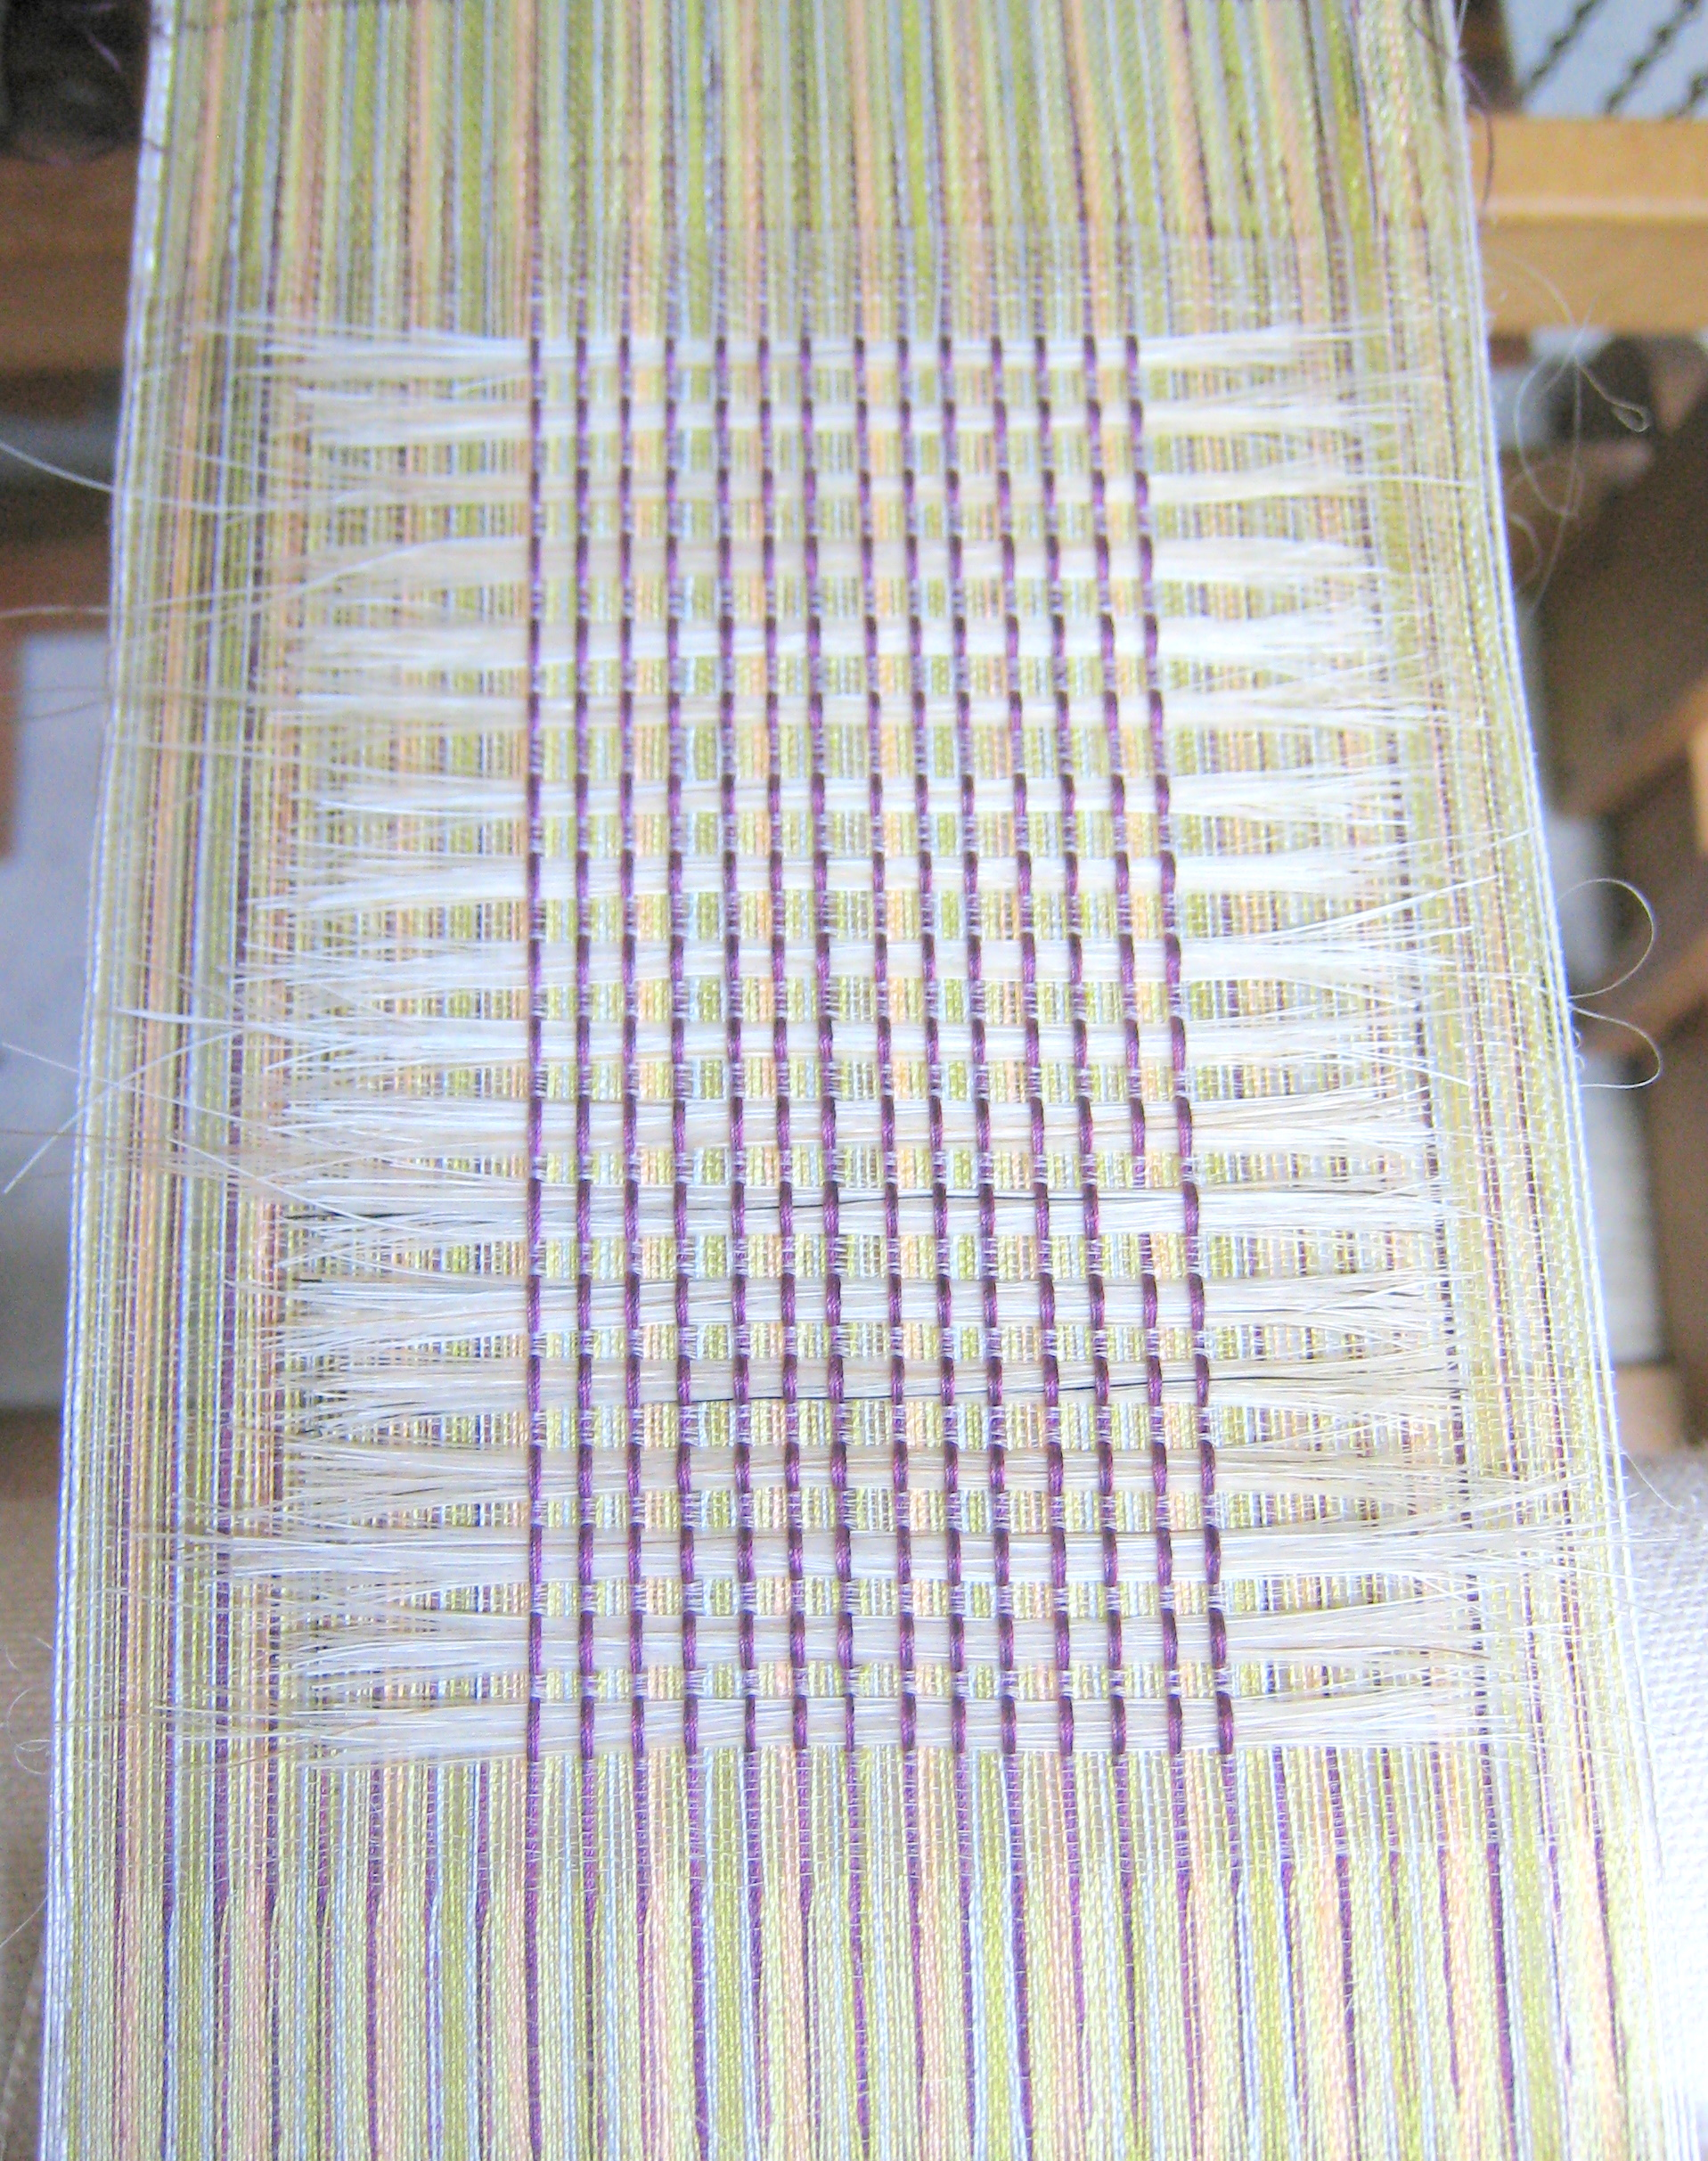 Published December 16, 2011 at 1917 × 2425 in A New Weaving